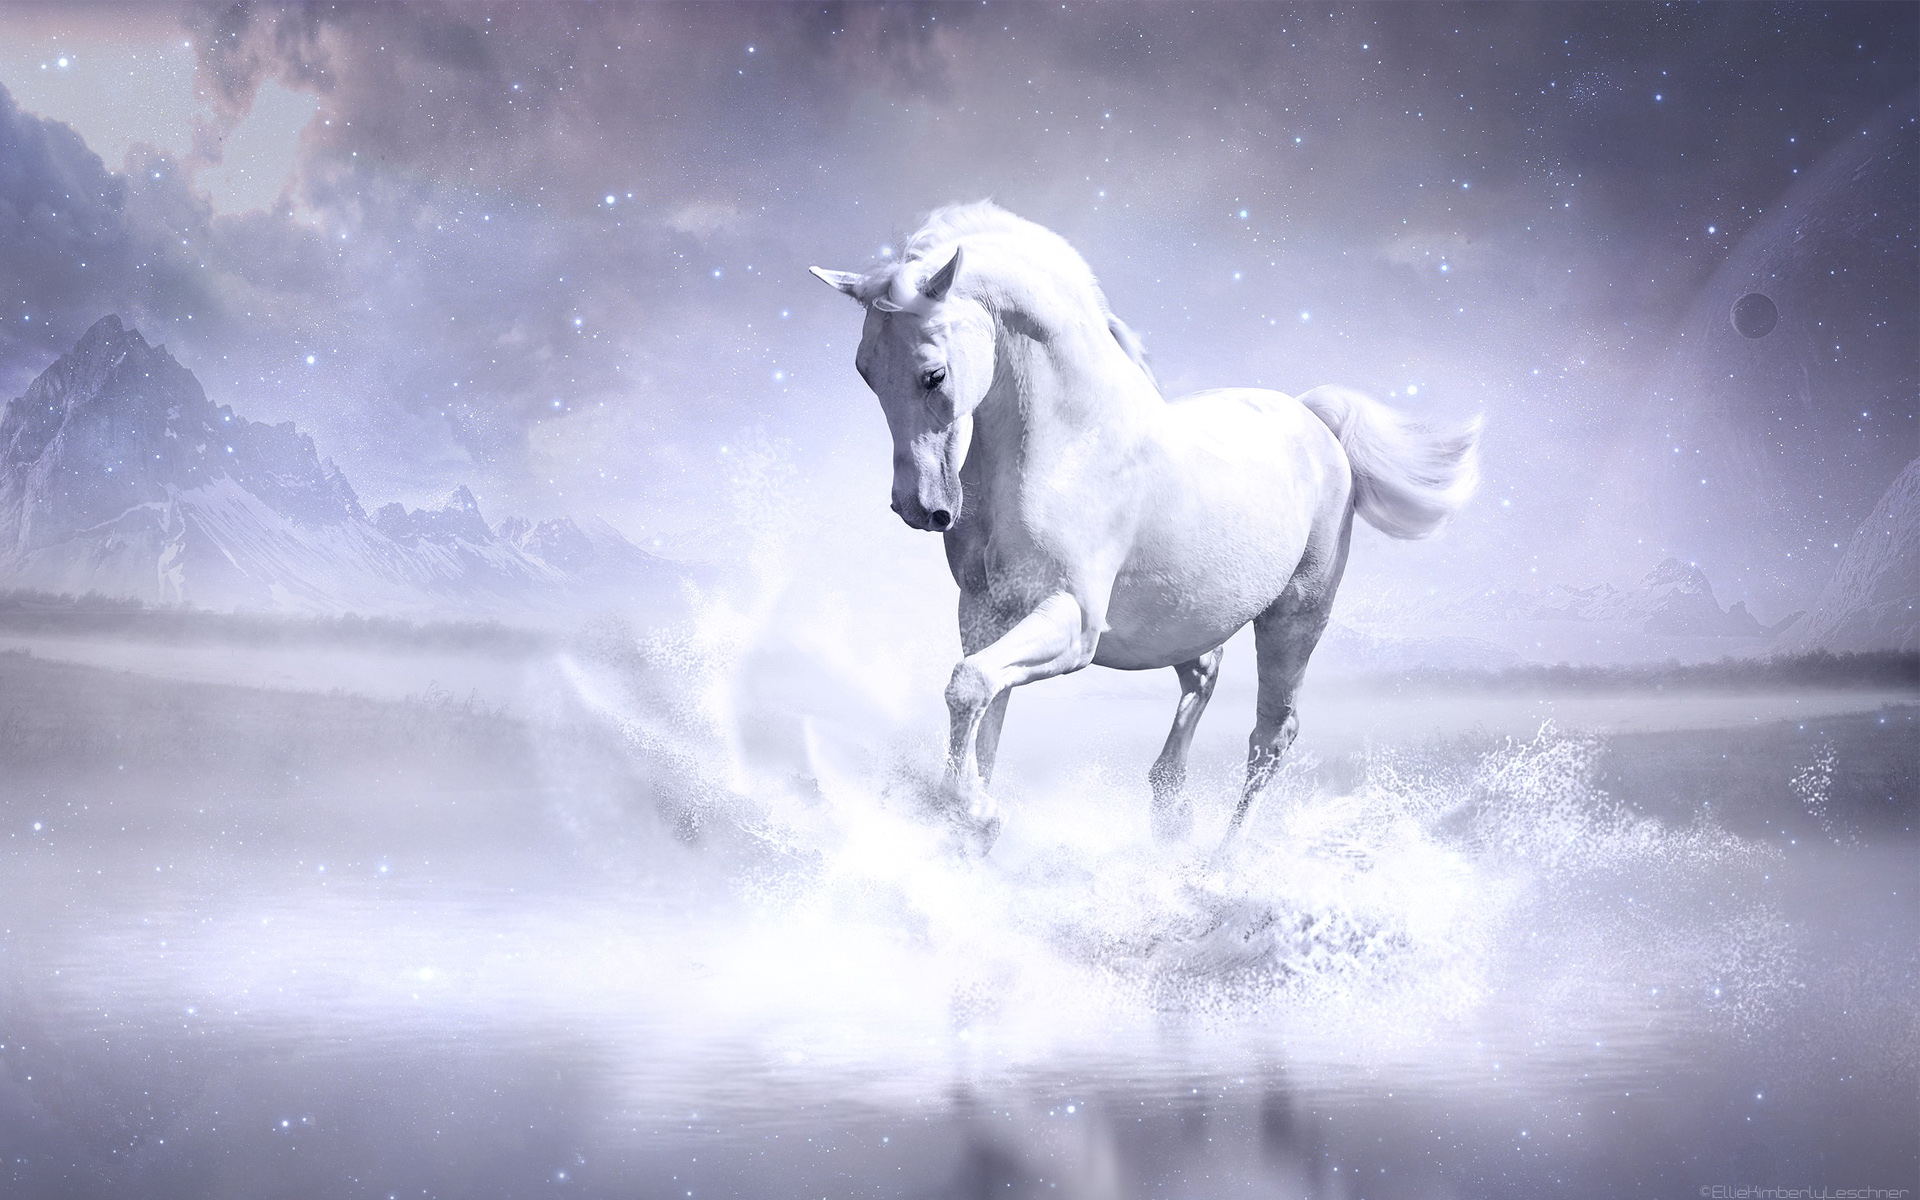 800x1280 Wallpaper Hd White Horse Hd Animals 4k Wallpapers Images